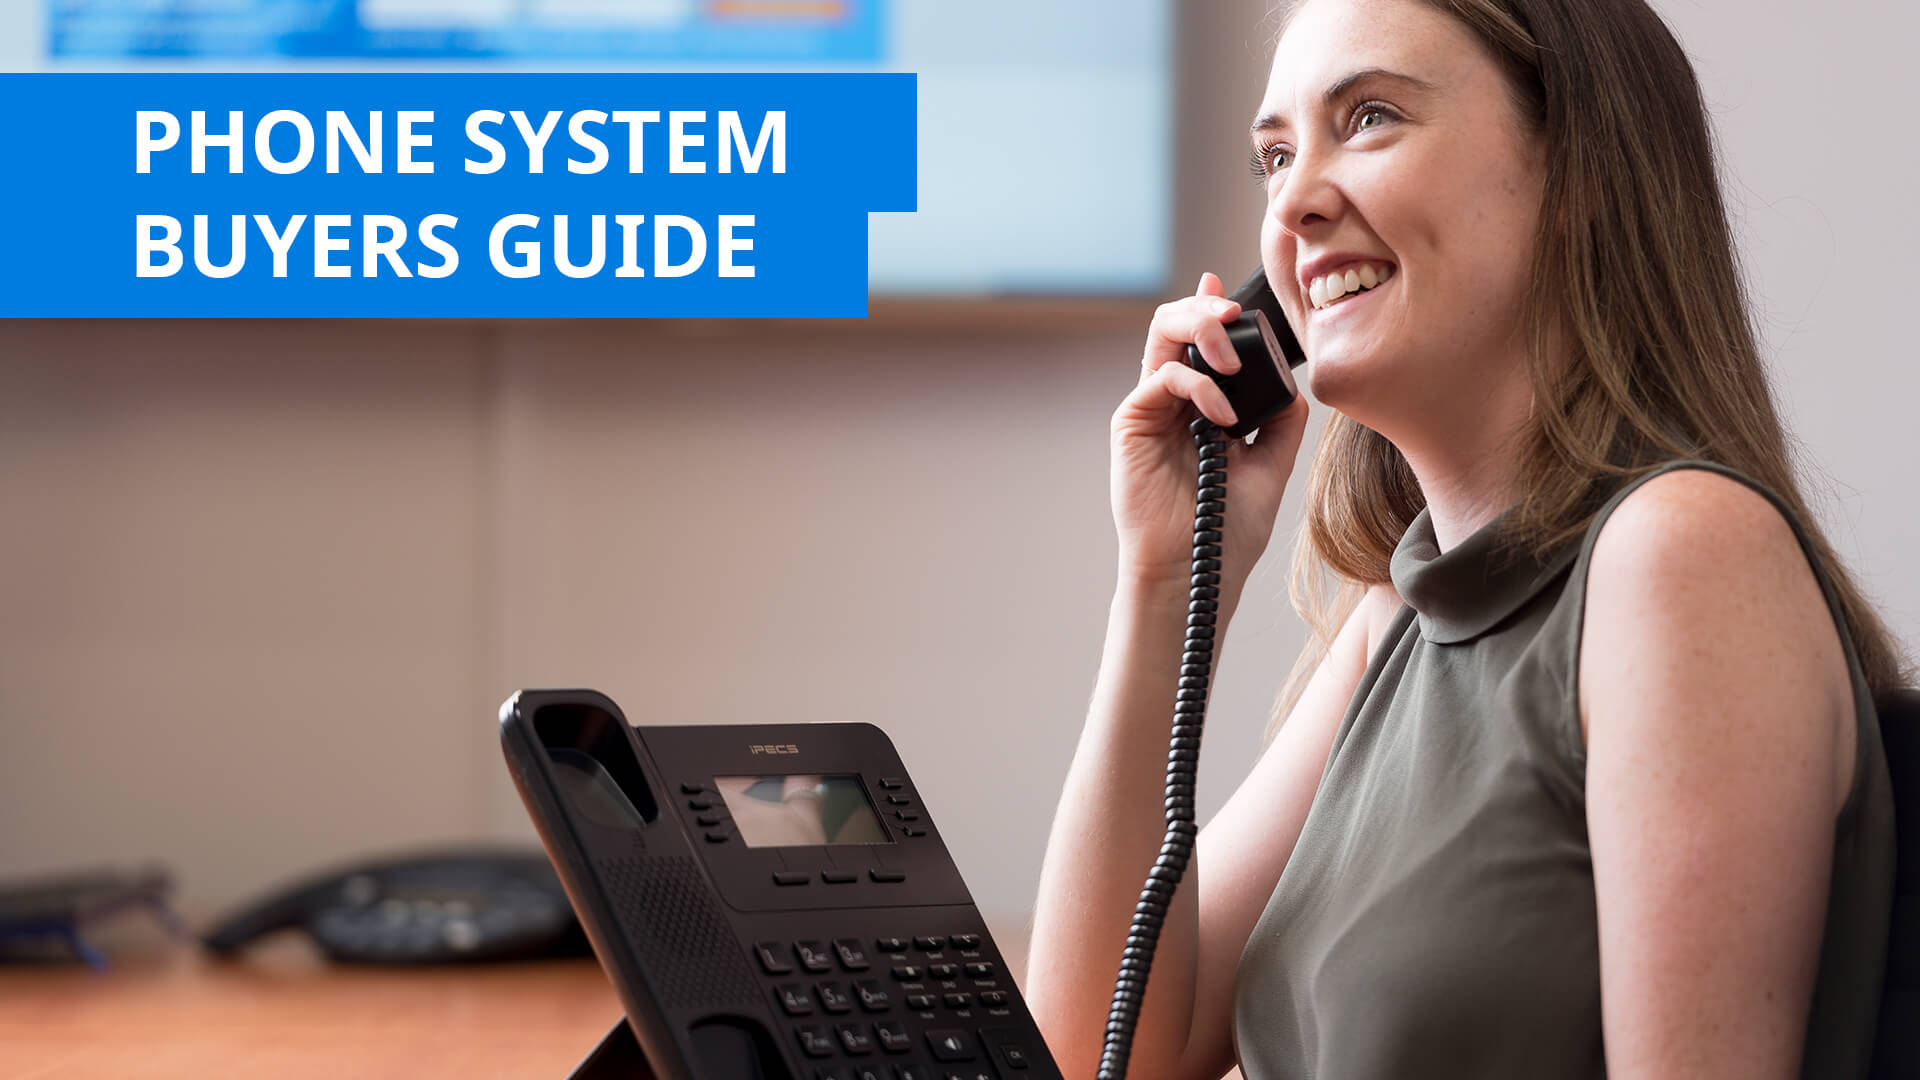 Phone System Buyers Guide - Infiniti Telecommunications